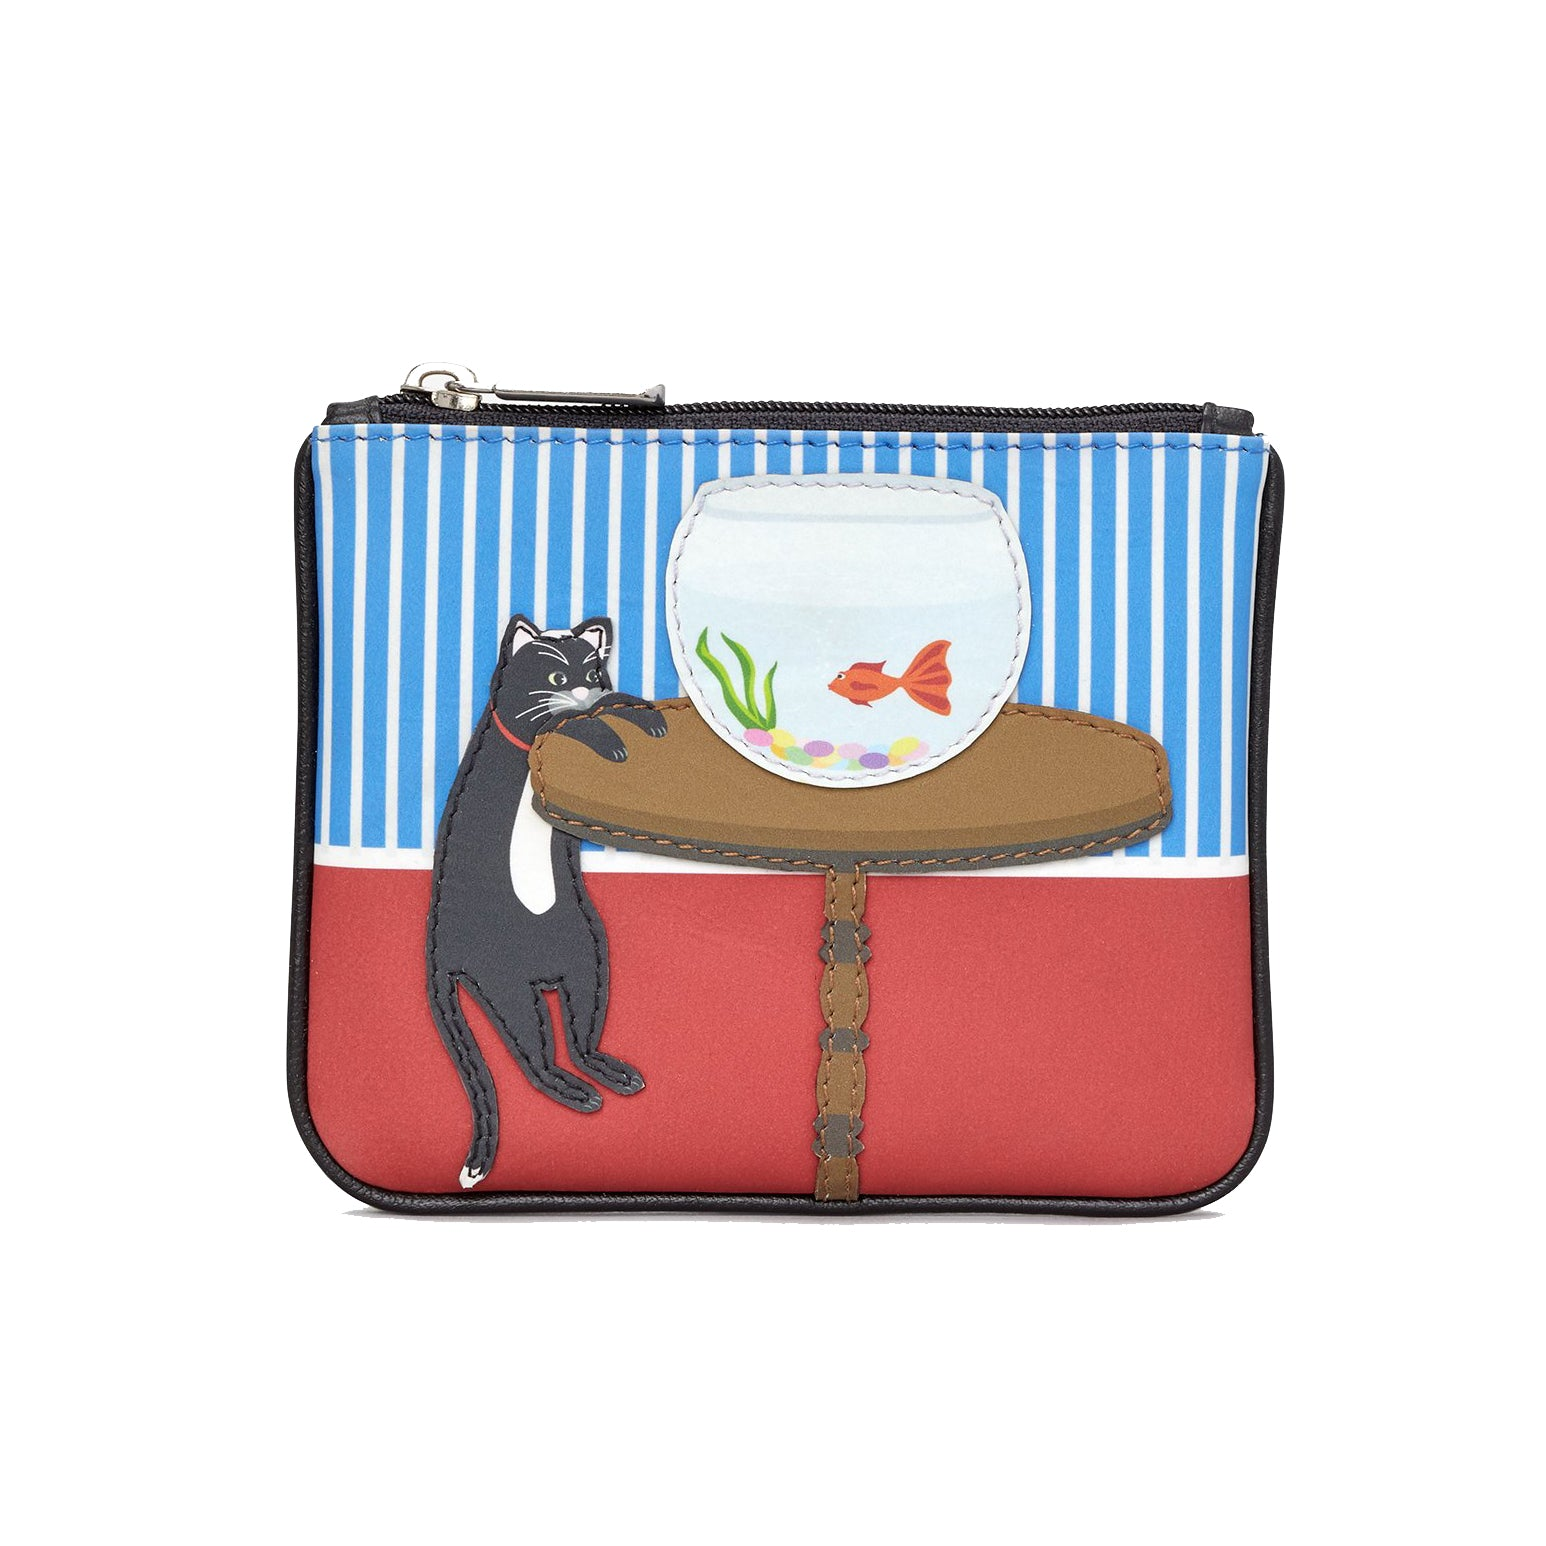 Zip Top Leather Coin Purse - Cat & Fish Bowl